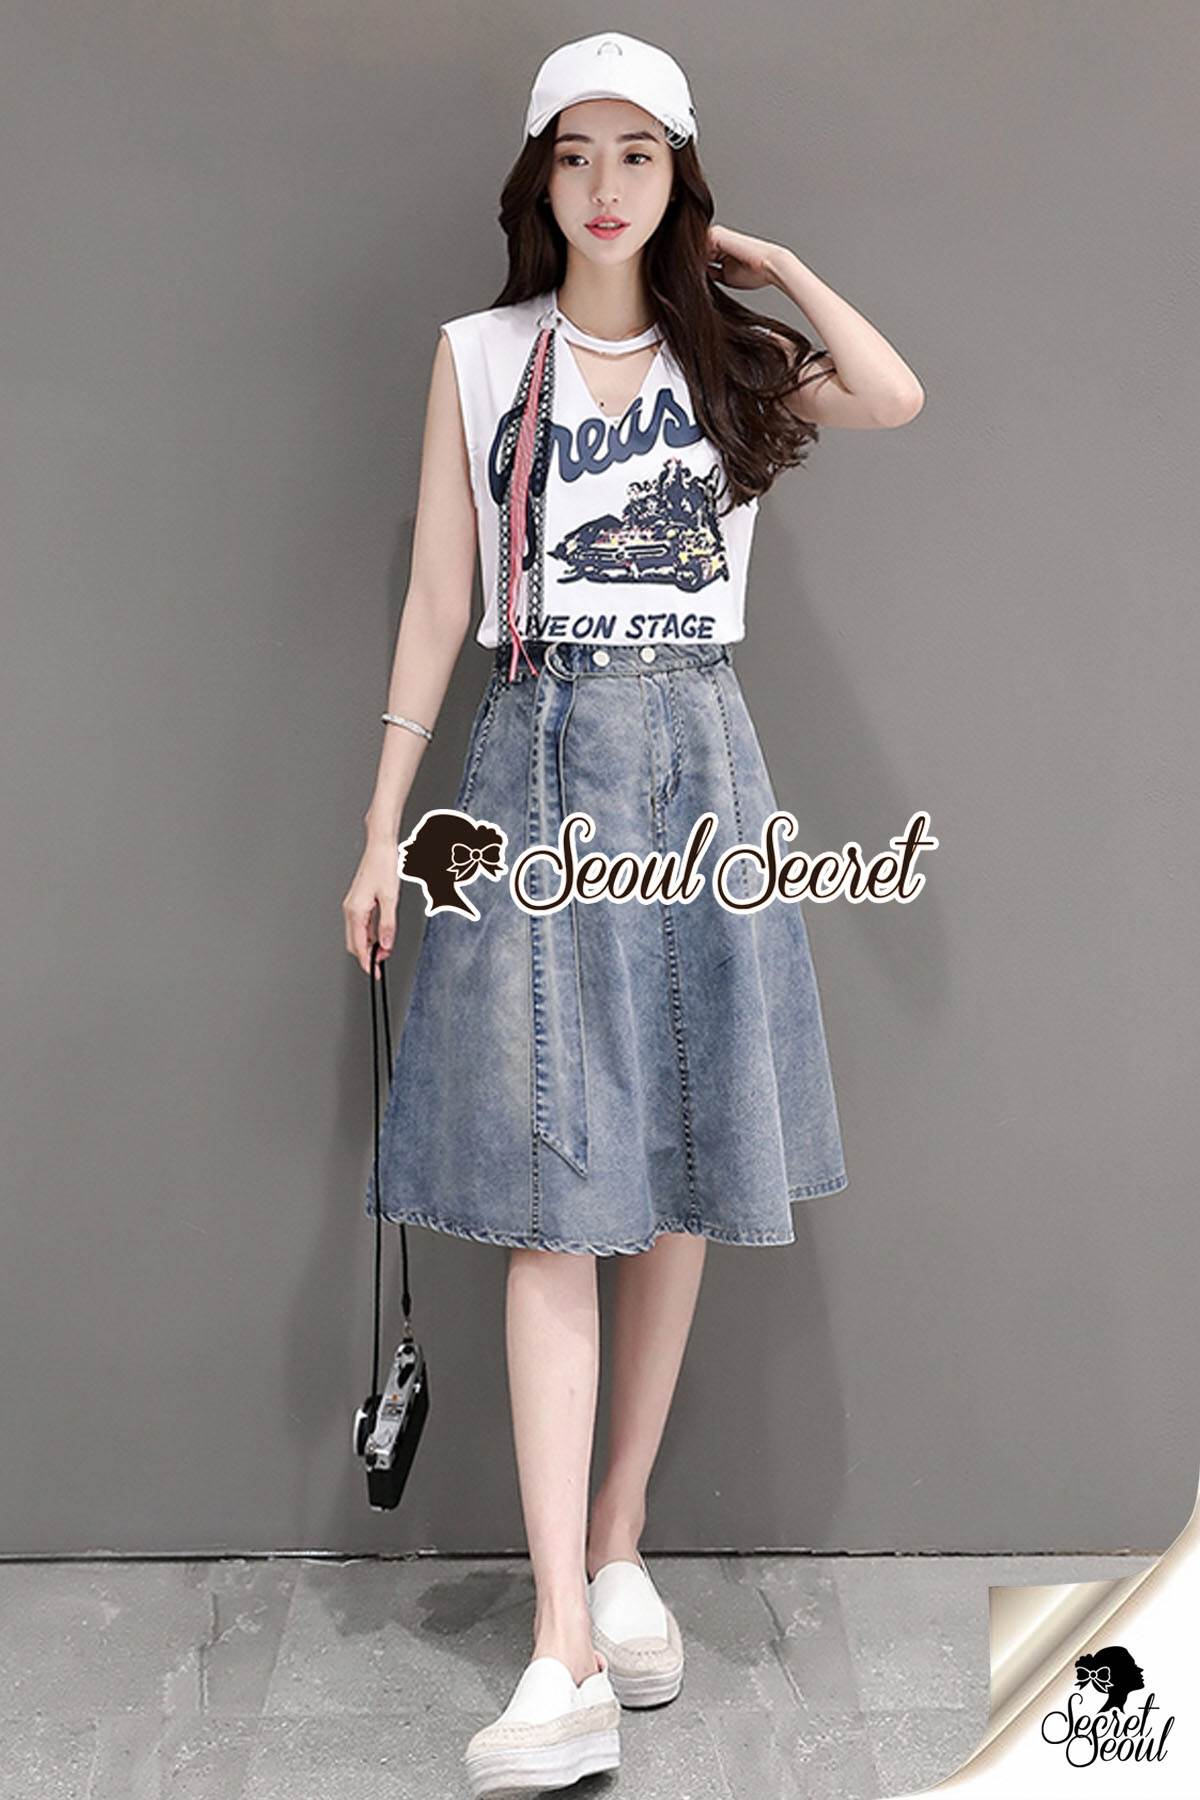 Seoul Secret Say's... Nifty Grease Live On Stage Print Denim Skirt Set